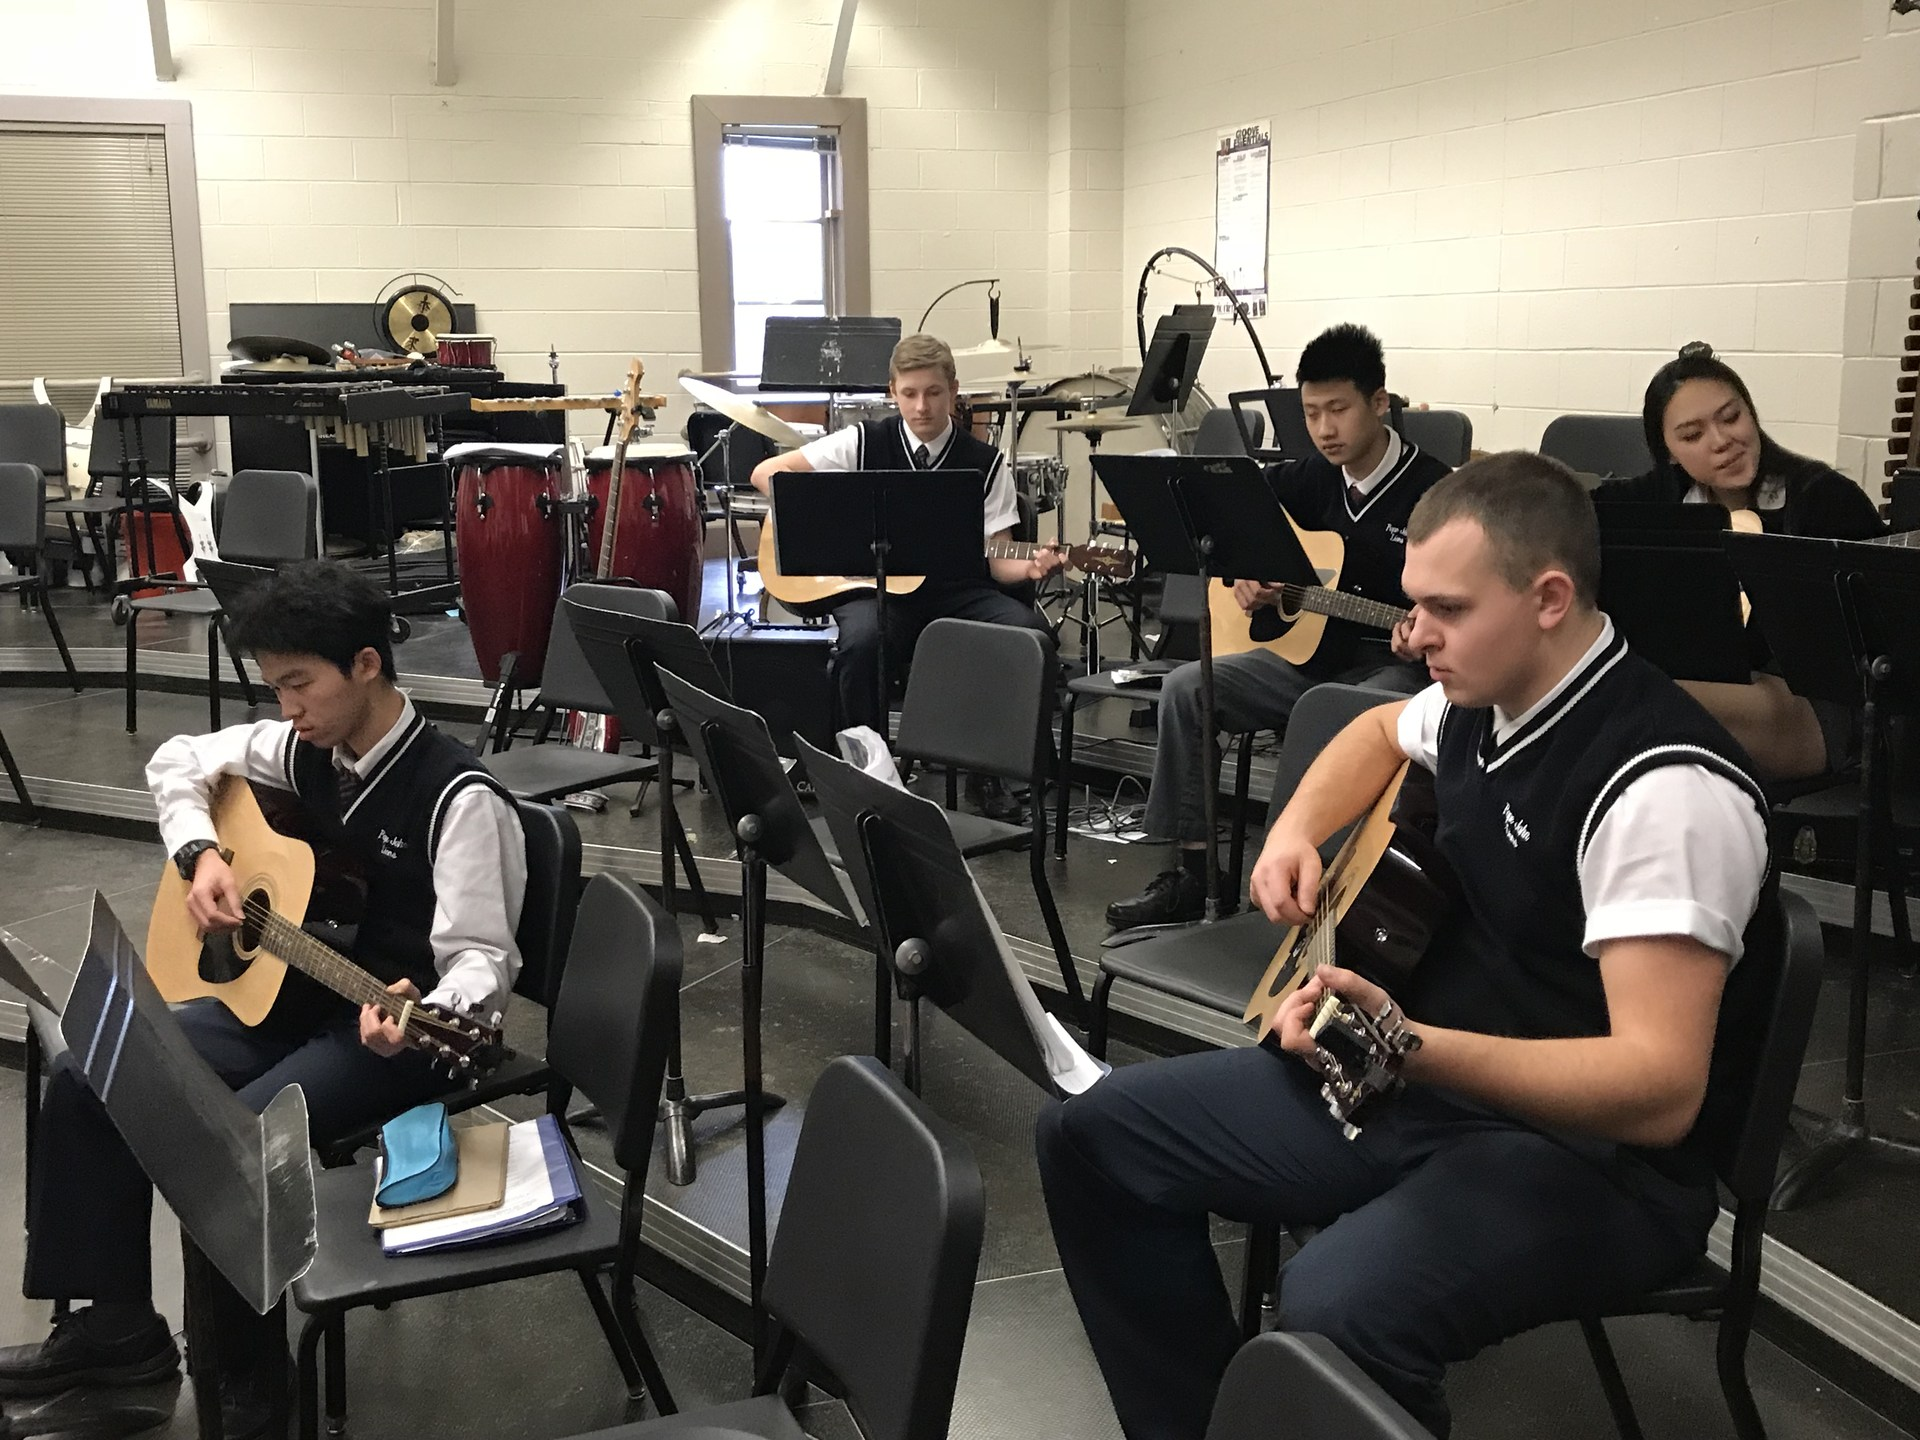 Students playing guitar in class